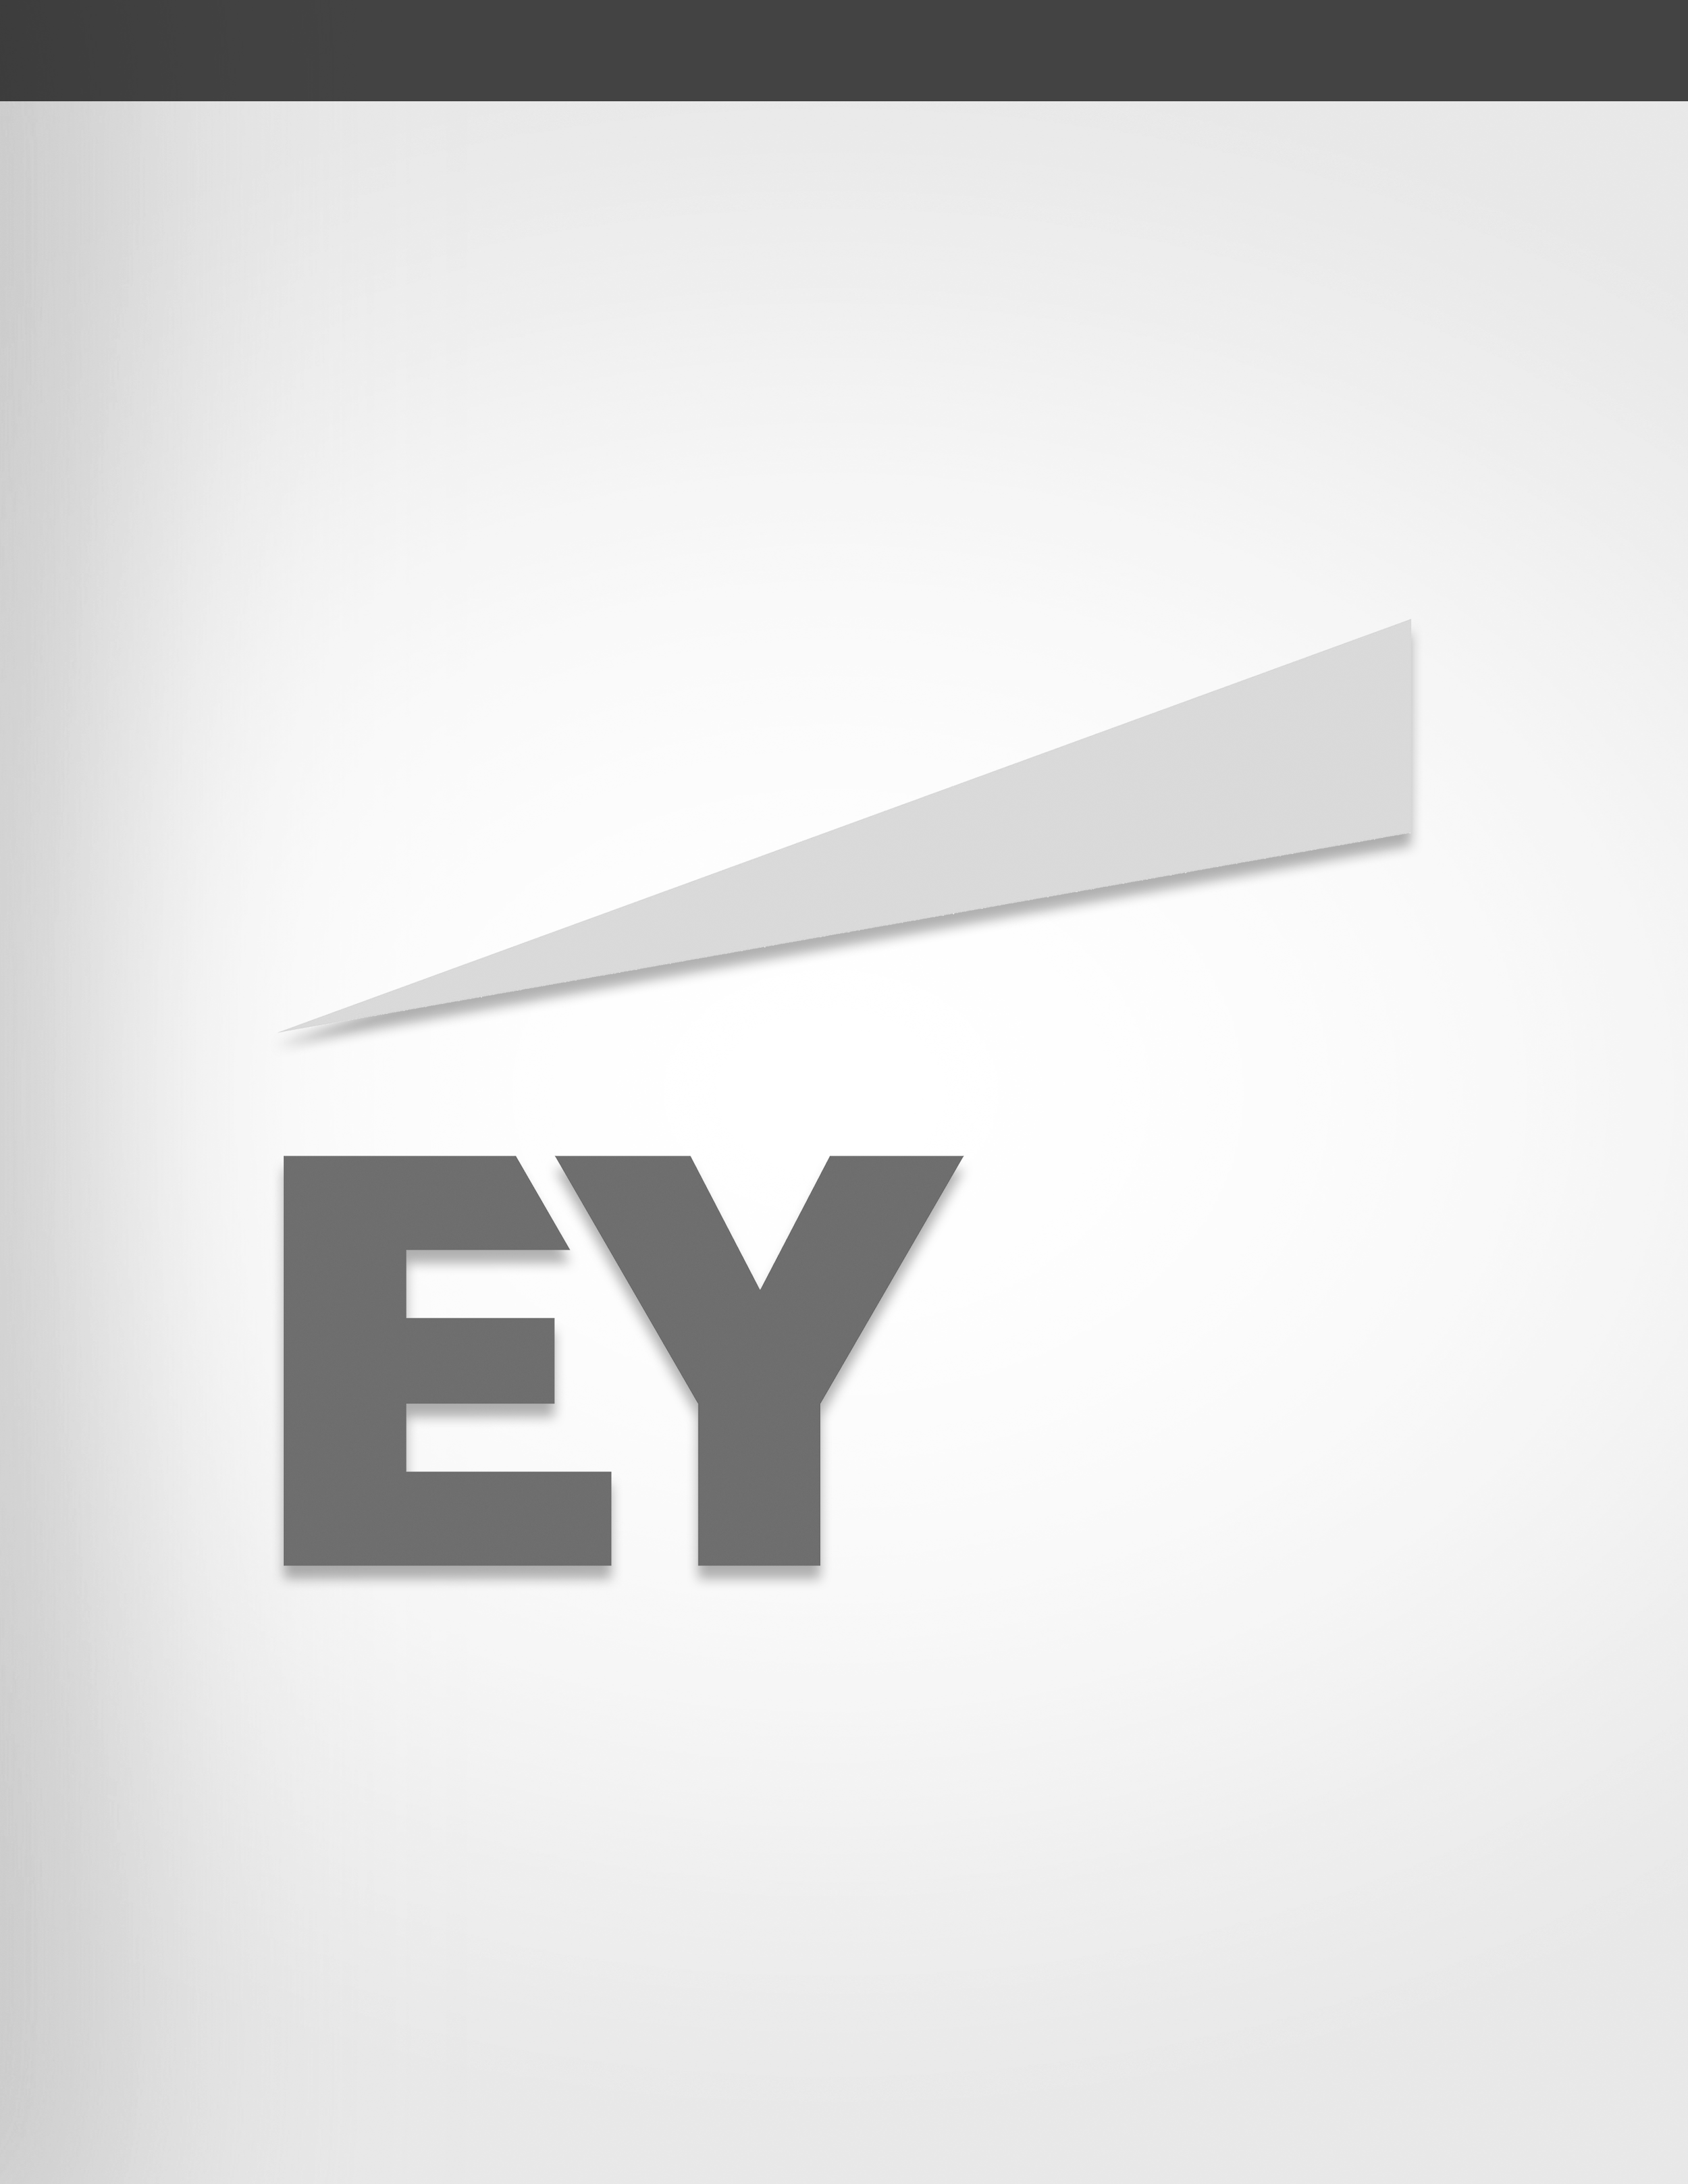 M&A Sector Outlook  (Ernst & Young)